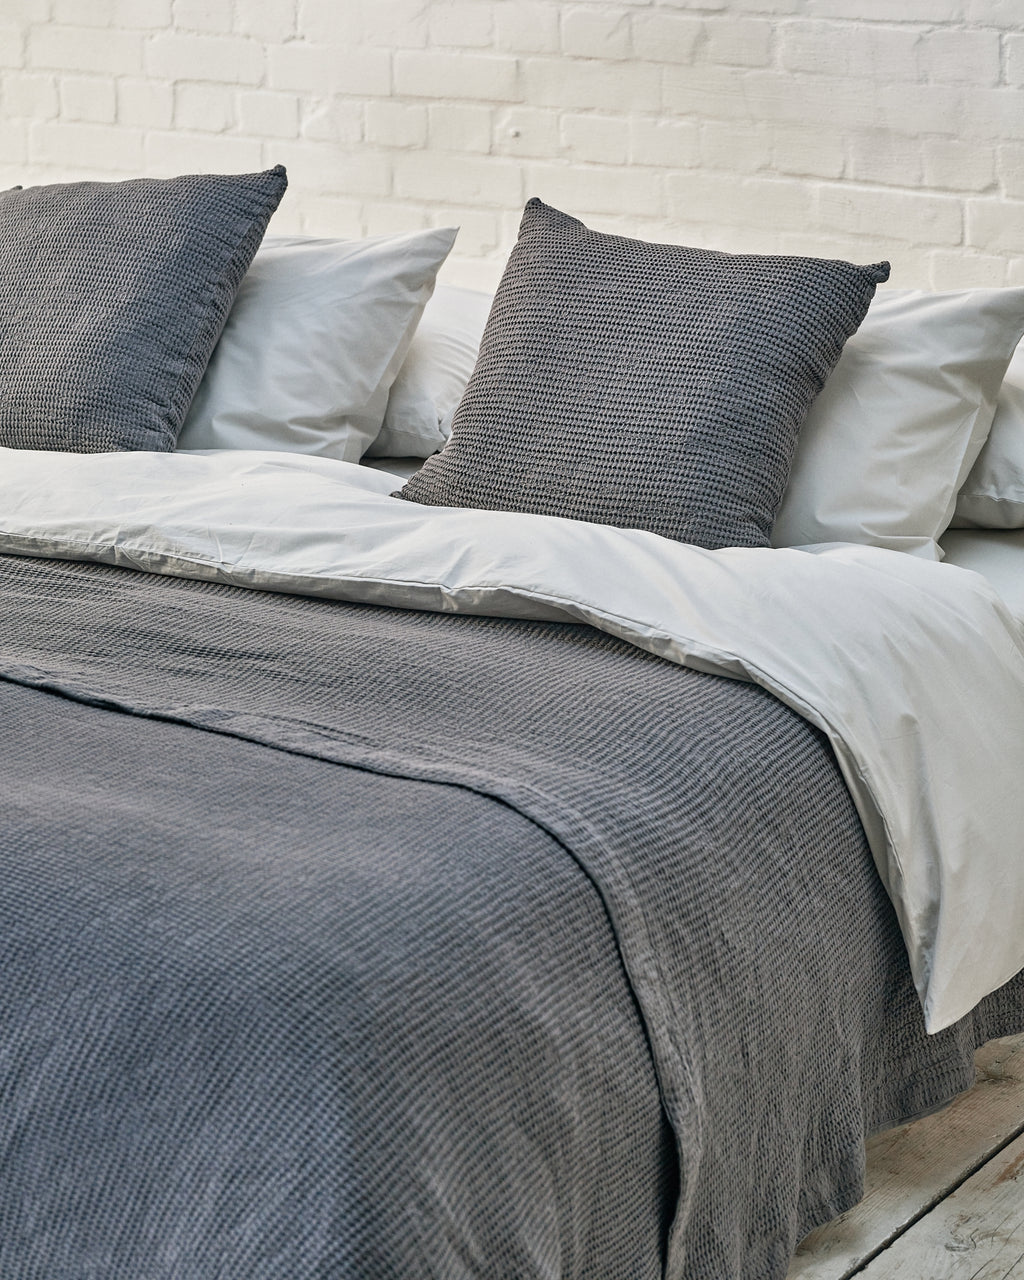 light grey luxury bedding set with dark grey waffle bedspread and scatter cushions